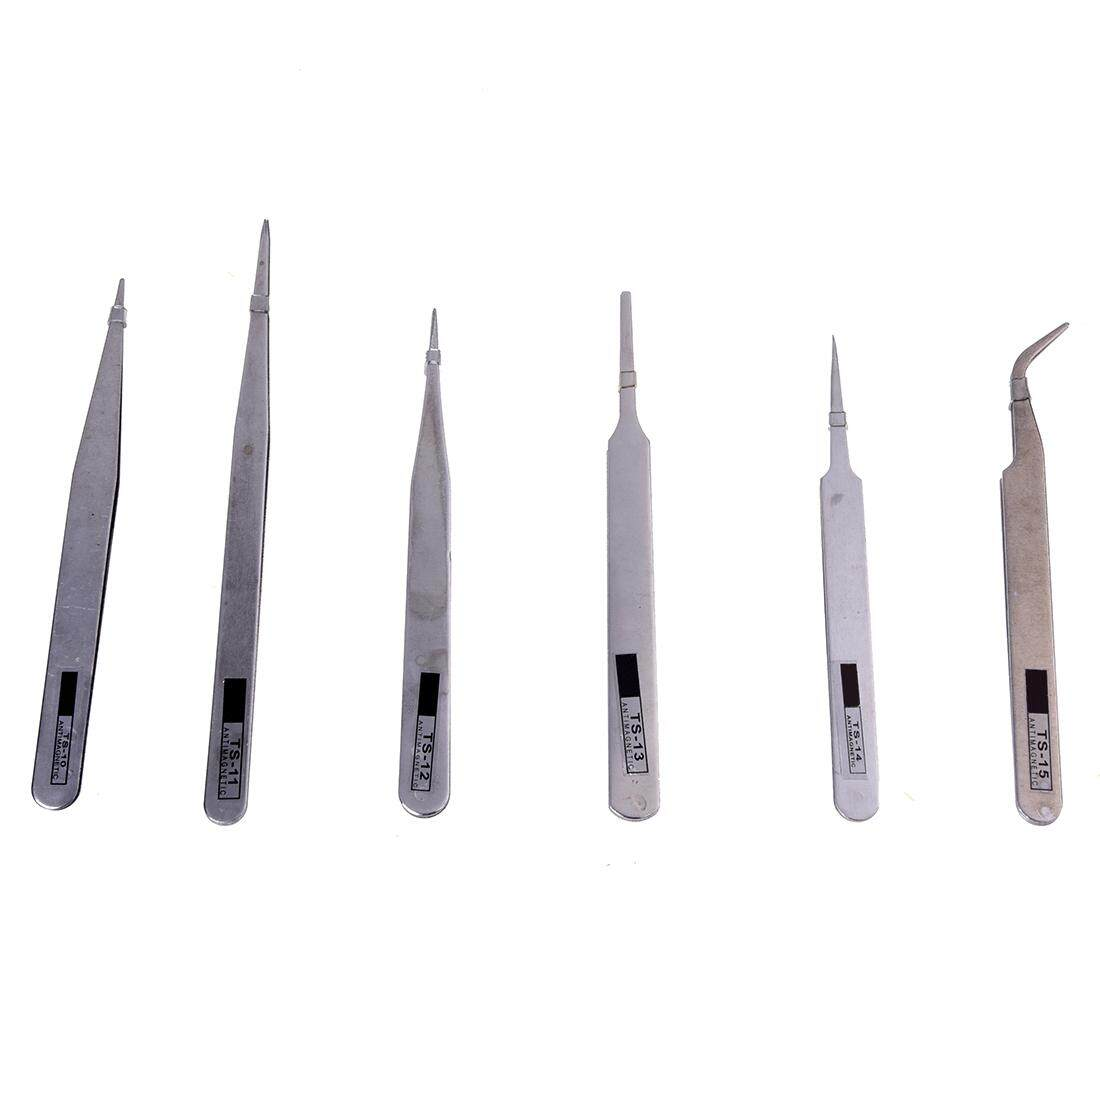 6x Brucelles Tweezers pliers Antistatic Tweezers TS-10/11/12/13/14/15 For PCBs - intl